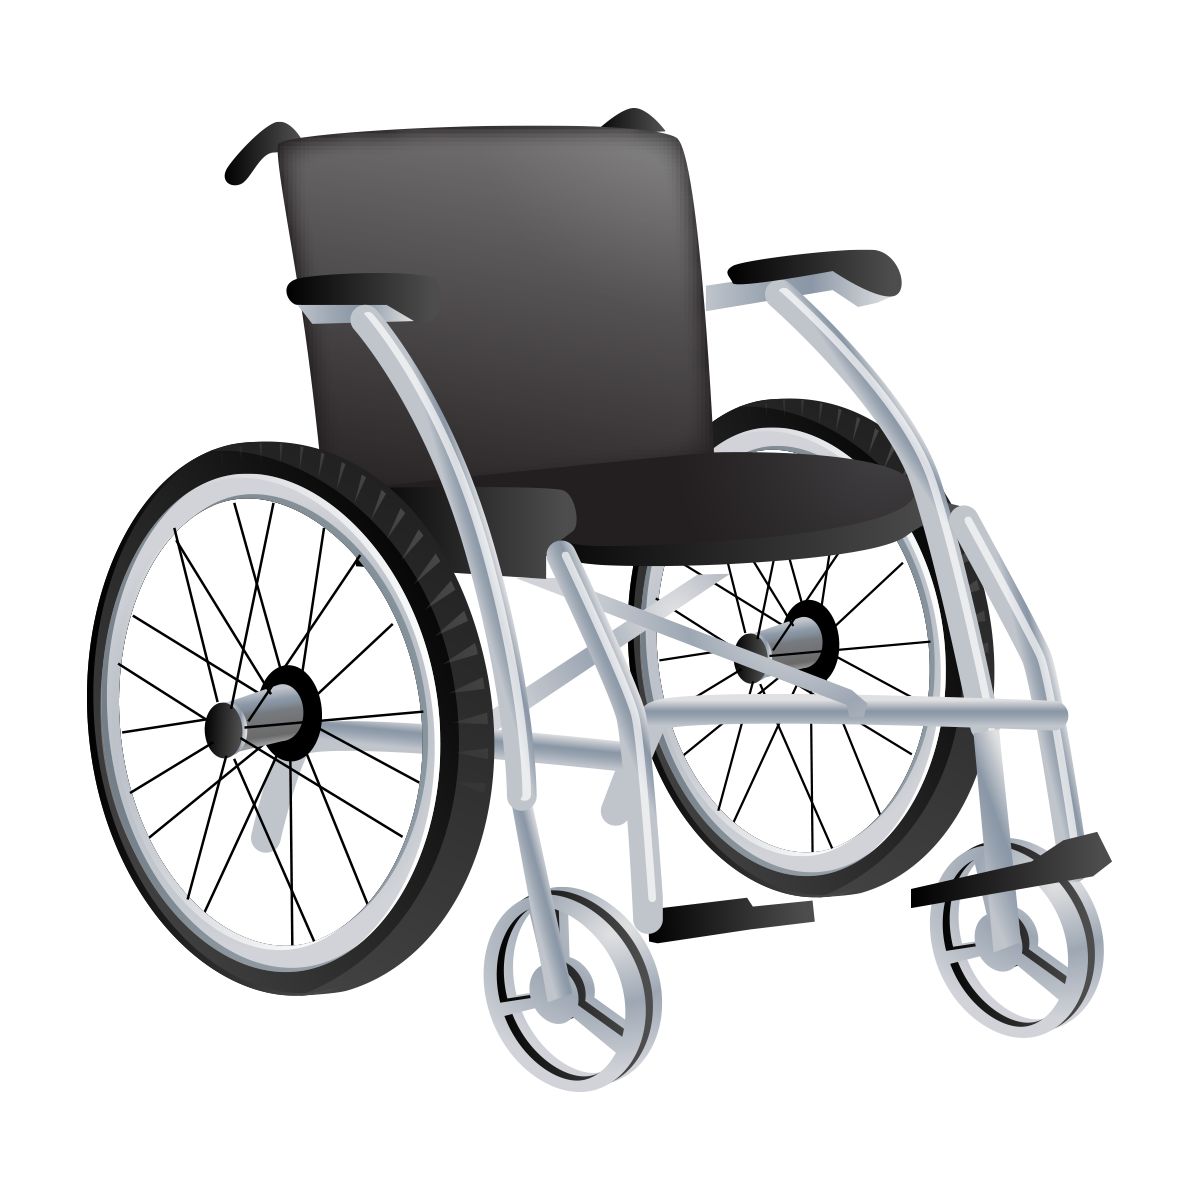 Free Download High Quality Vector Wheel Chair Png Transparent Background Image This Is Vector Wheel Chair Transpar Background Images Transparent Background Png